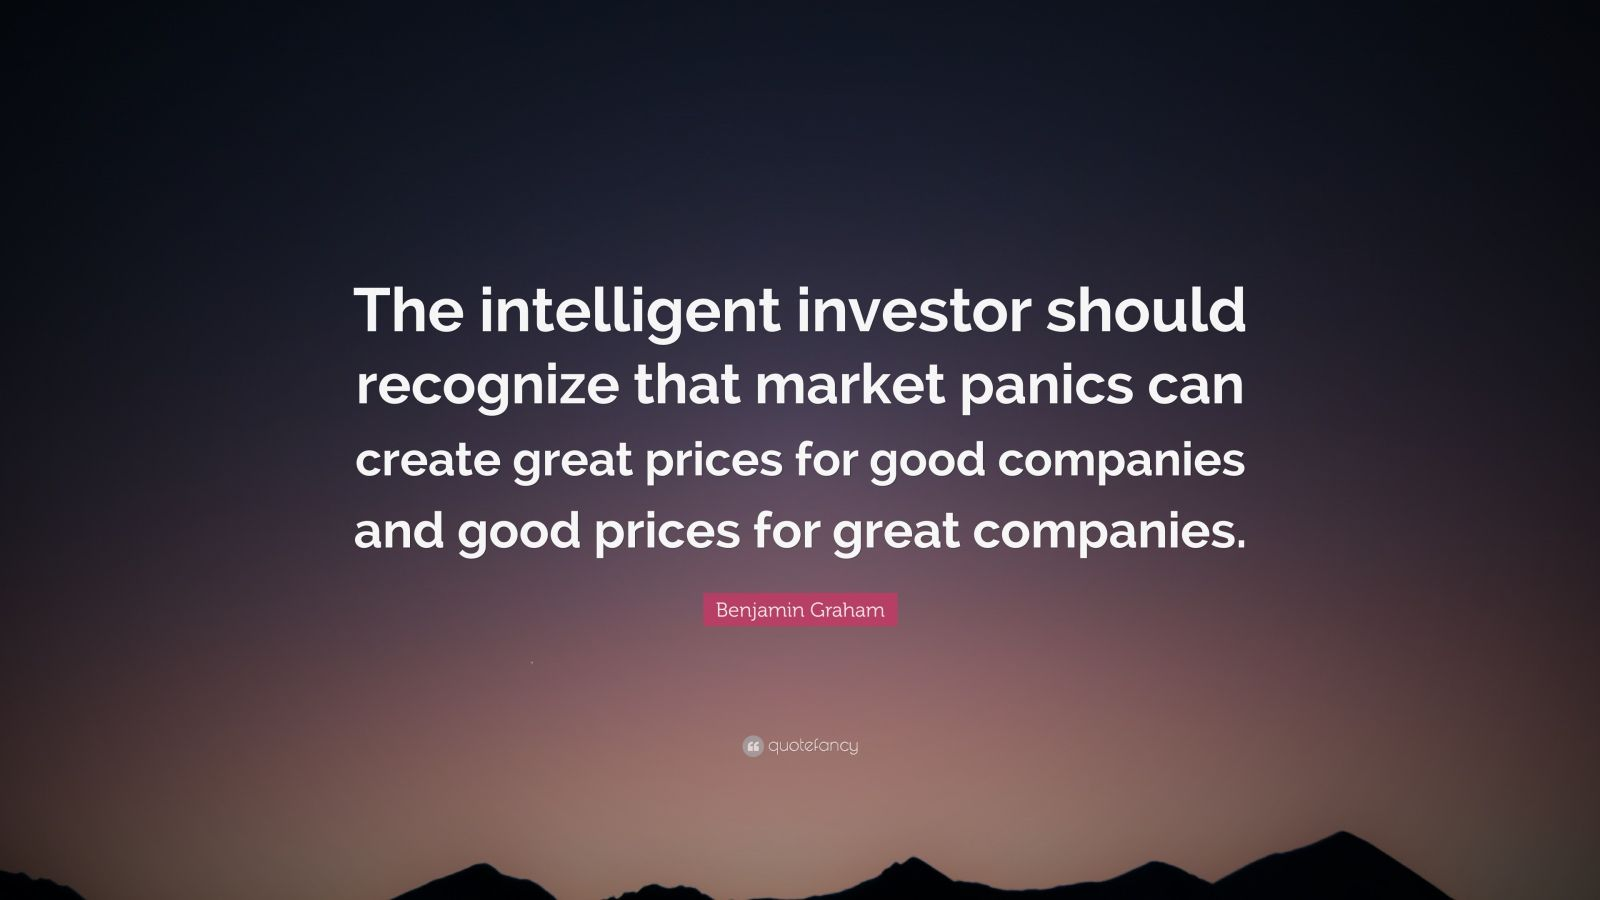 """Benjamin Graham Quote: """"The intelligent investor should recognize that market panics can create great prices for good companies and good prices for great companies."""""""